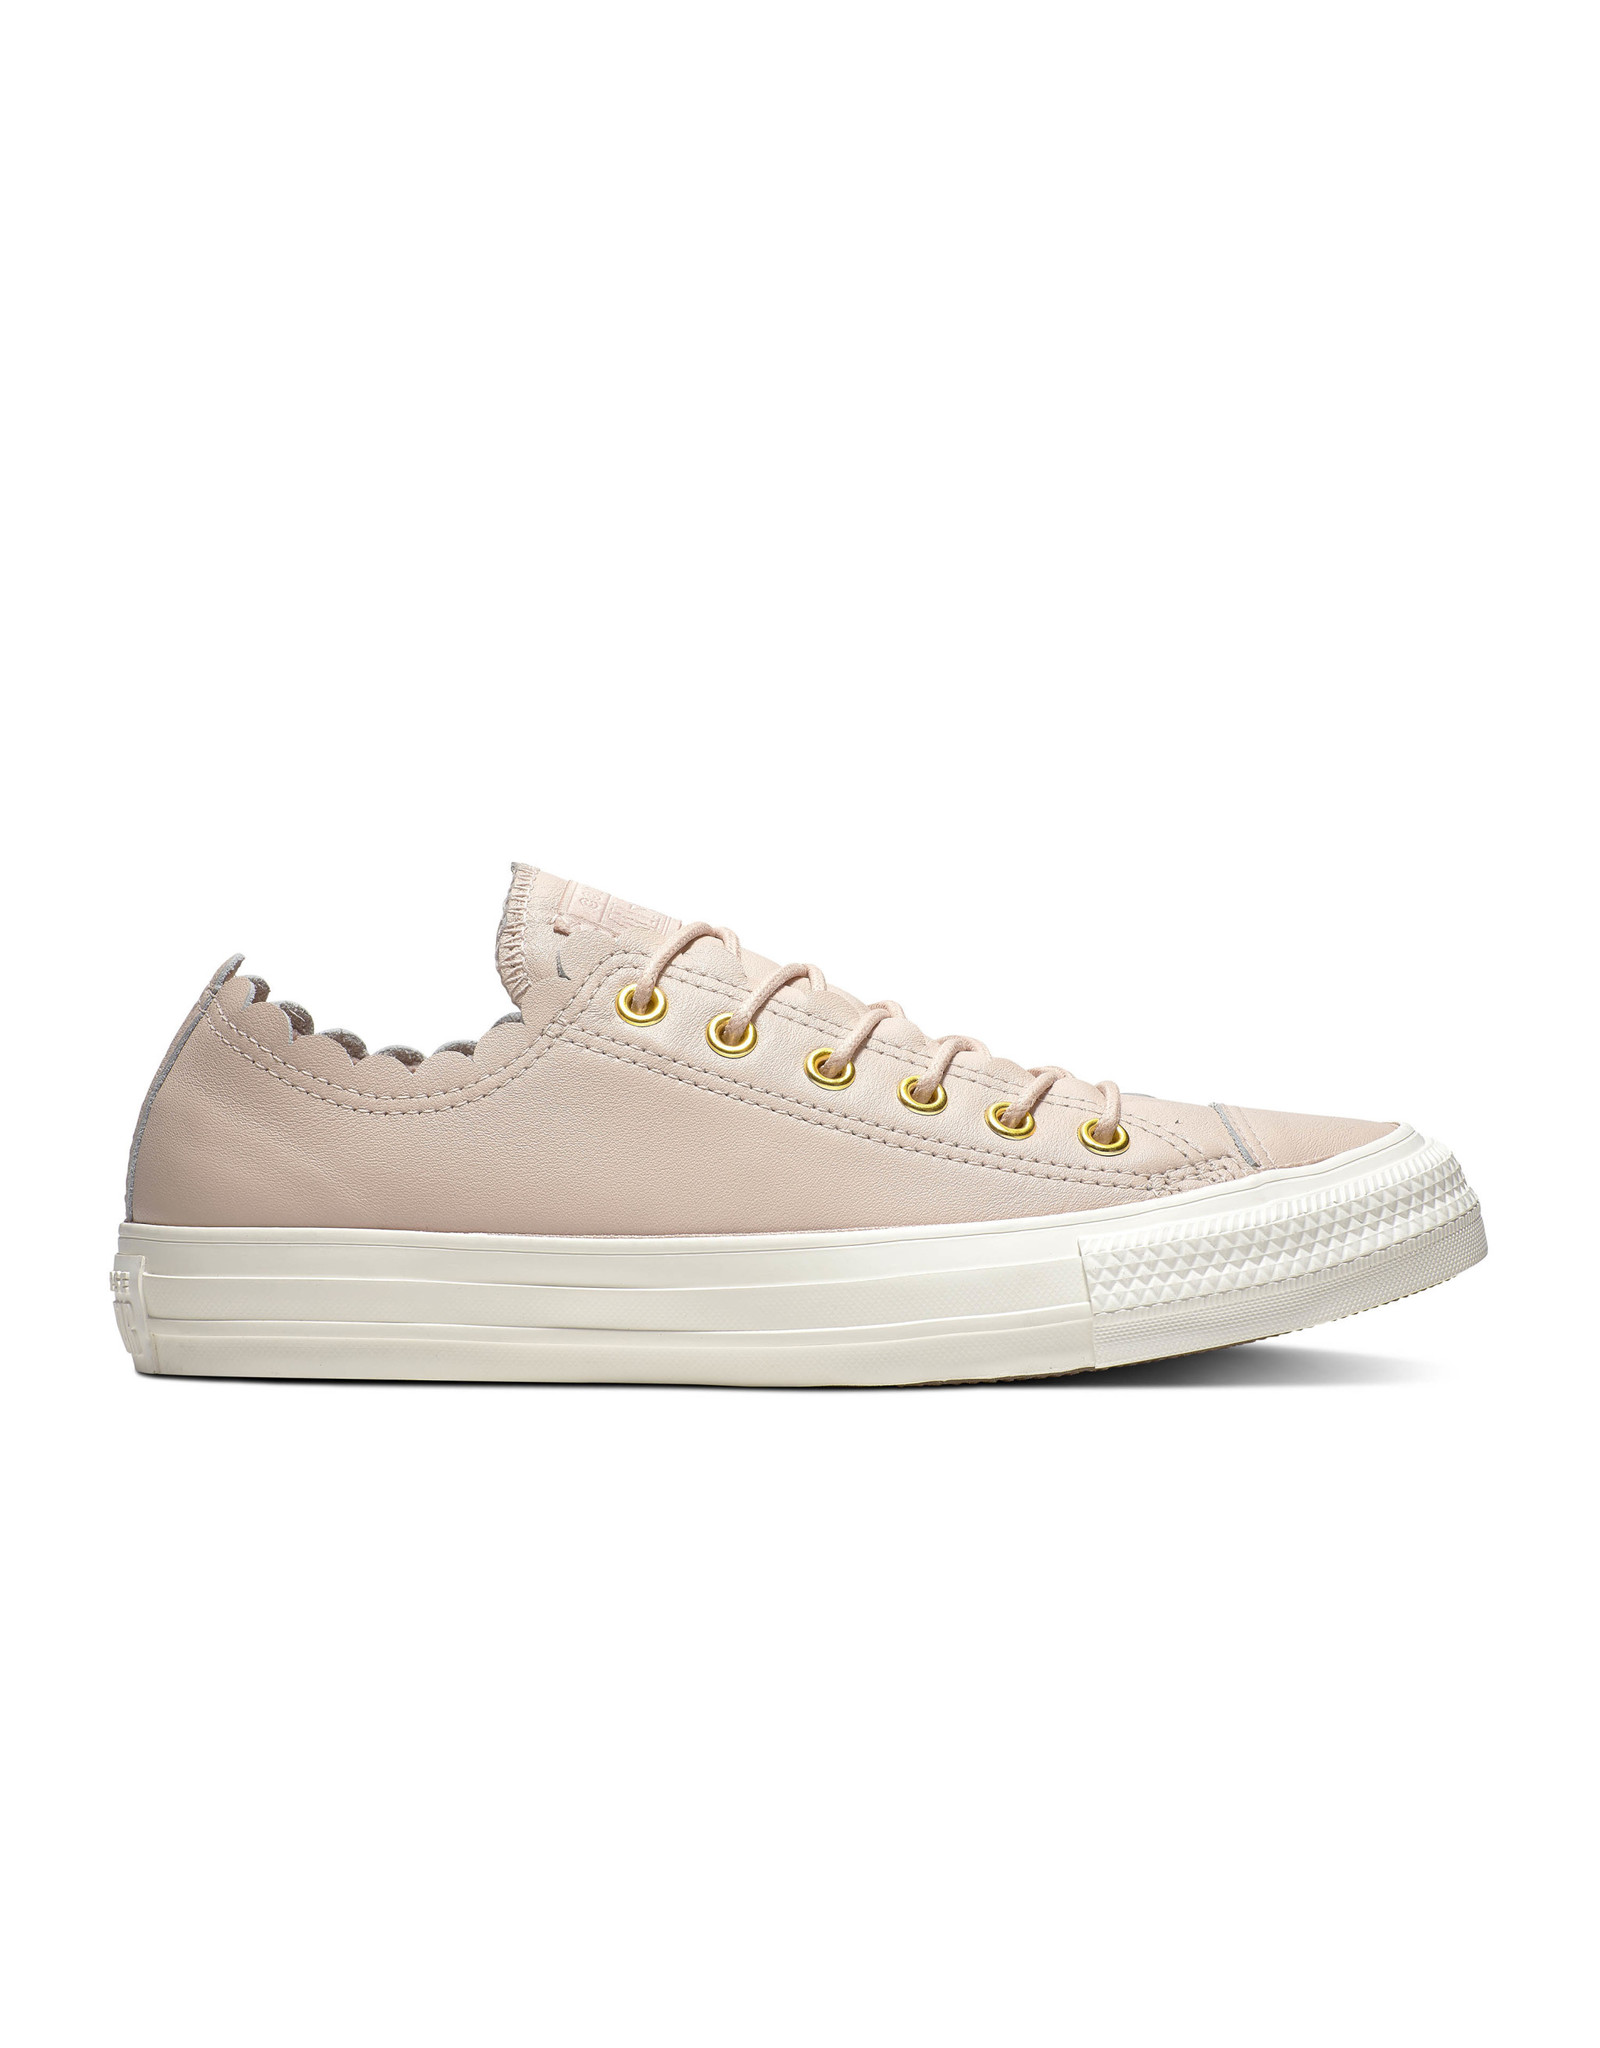 CONVERSE CHUCK TAYLOR ALL STAR OX PARTICLE BEIGE/GOLD/EGRET C13PAG-563514C